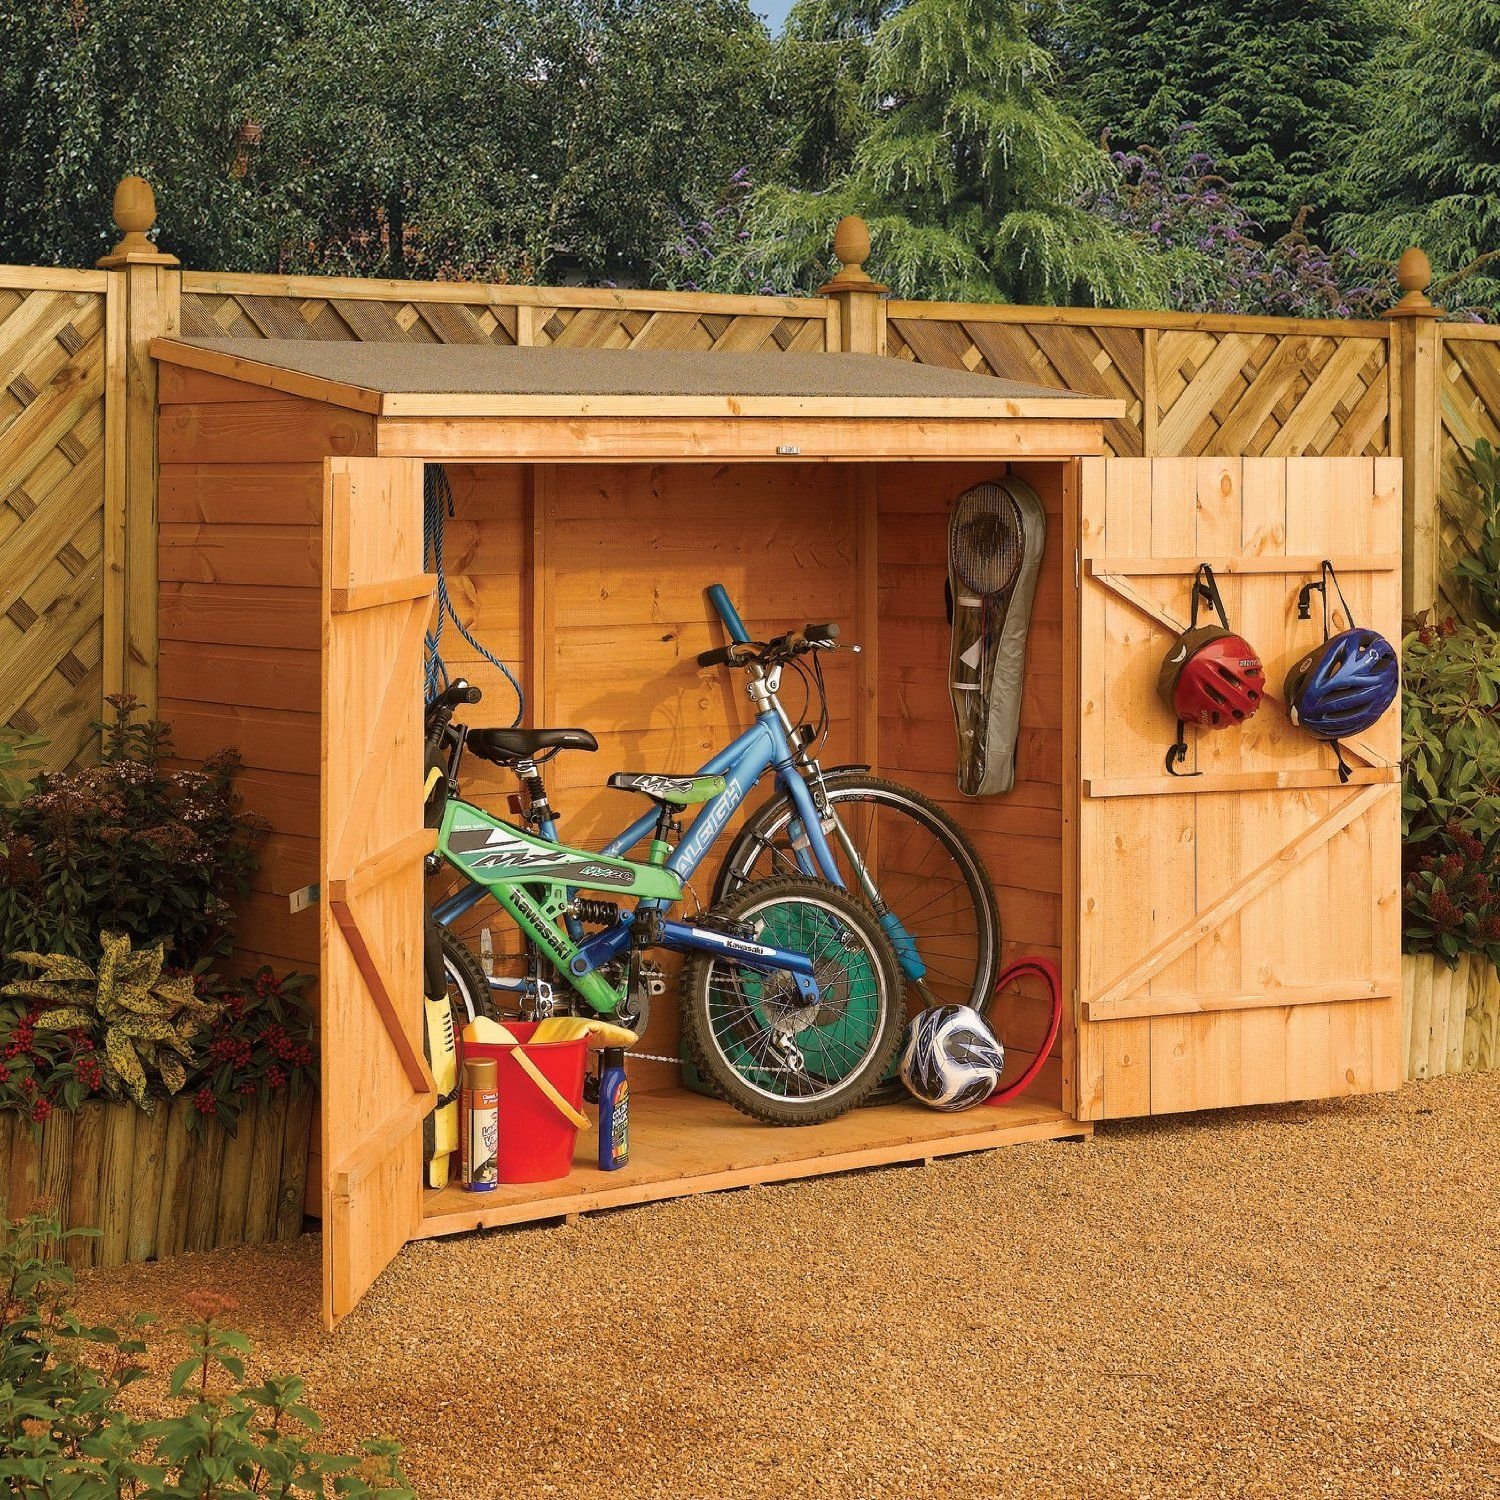 Garden Sheds 3ft Wide we were thinking what are the most purpose made secure bike sheds